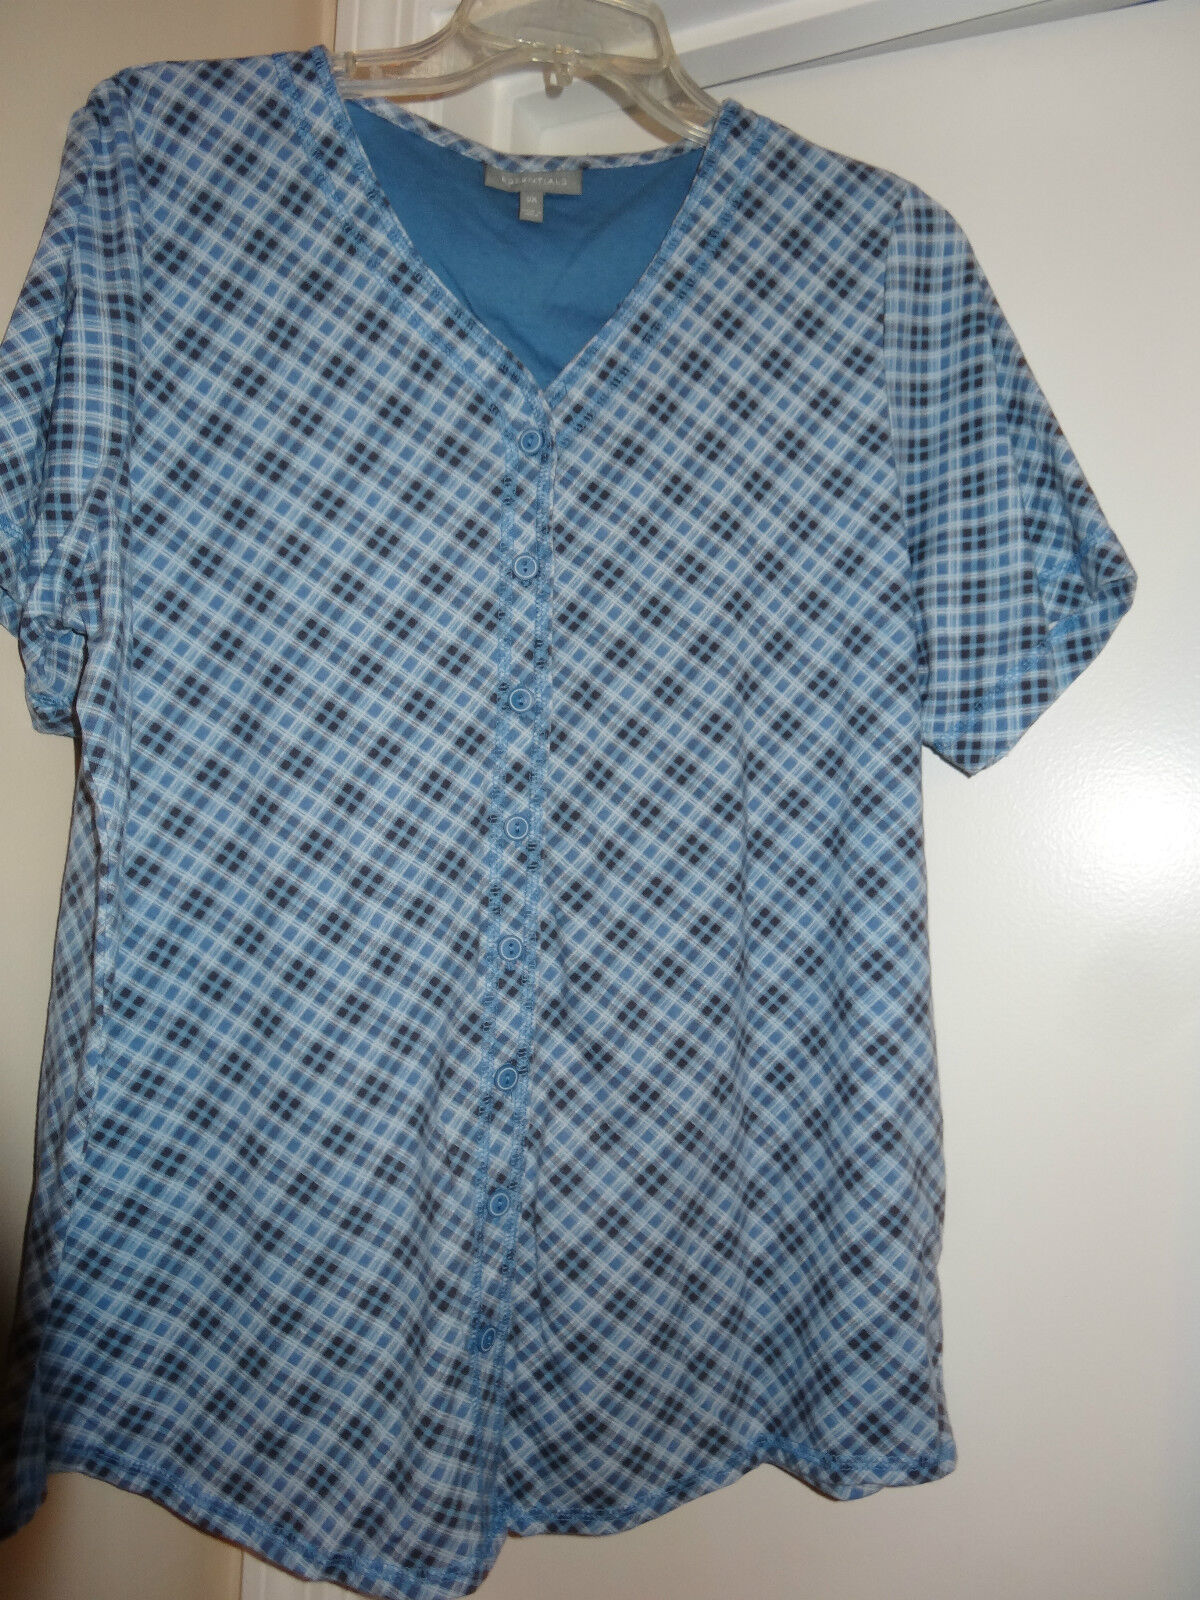 ESSENTIALS   Blau & schwarz Plaid Short Sleeve Top  Größe 1X